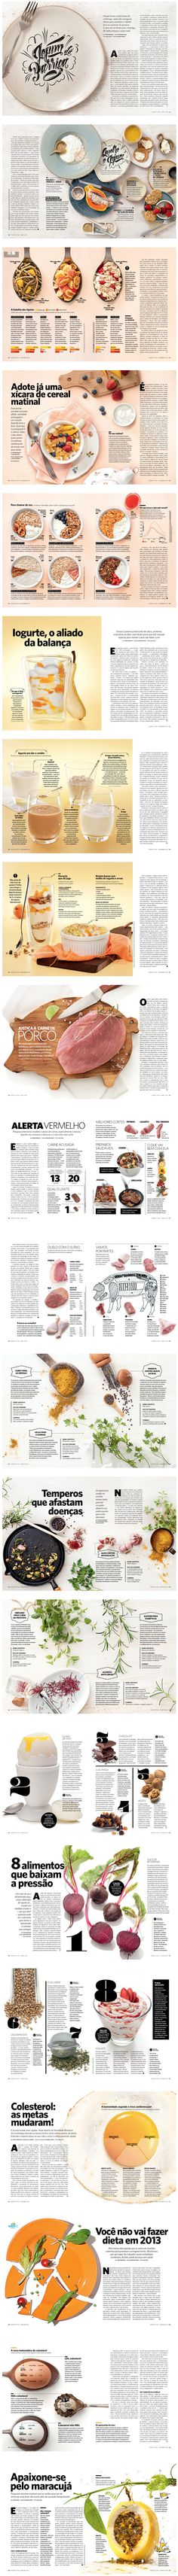 Saude Magazine is a Healthy Magazine from Brazil and has an amazing mix of food photography, grid layout, and typography for you to enjoy. Take a look and pick some ideas that you can use on your next editorial adventure. Editorial Design Layouts, Graphic Design Layouts, Poster Design, Menu Design, Food Design, Print Design, Design Design, Graphic Design Magazine, Magazine Layout Design